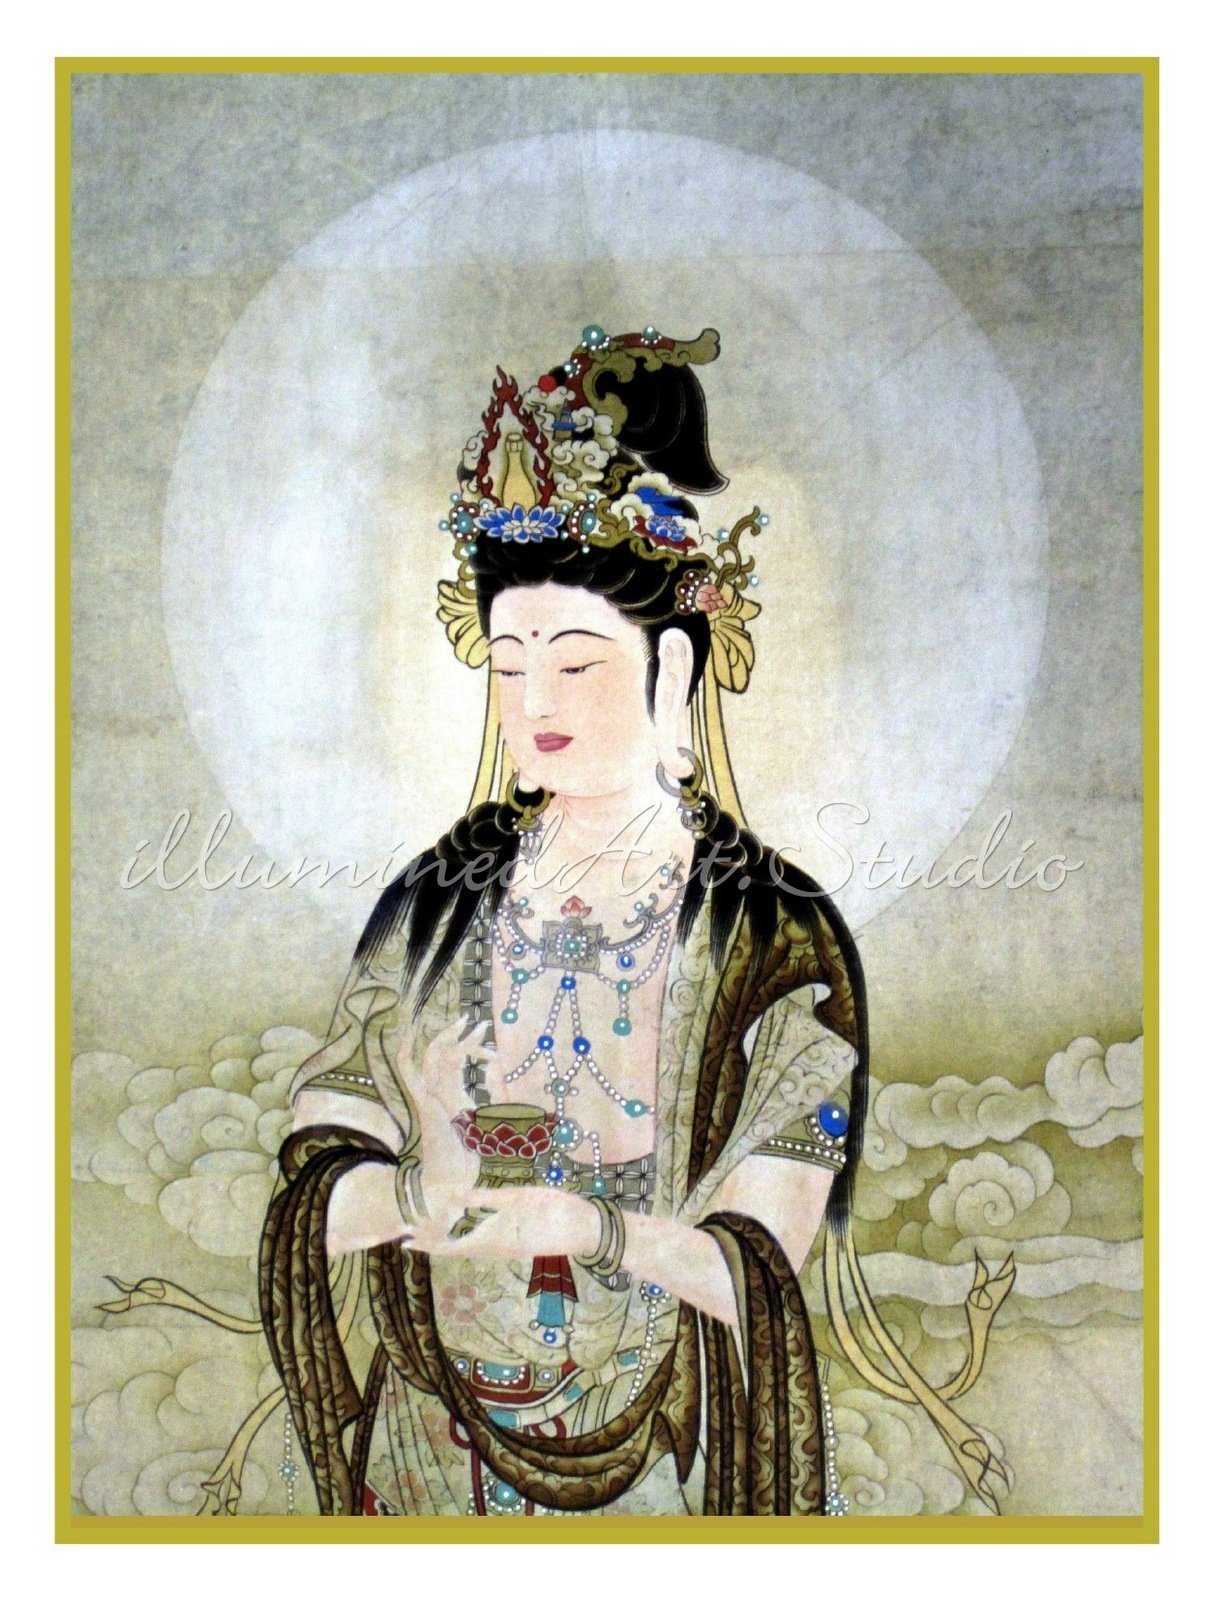 Kuan Yin With Nectar of Compassion